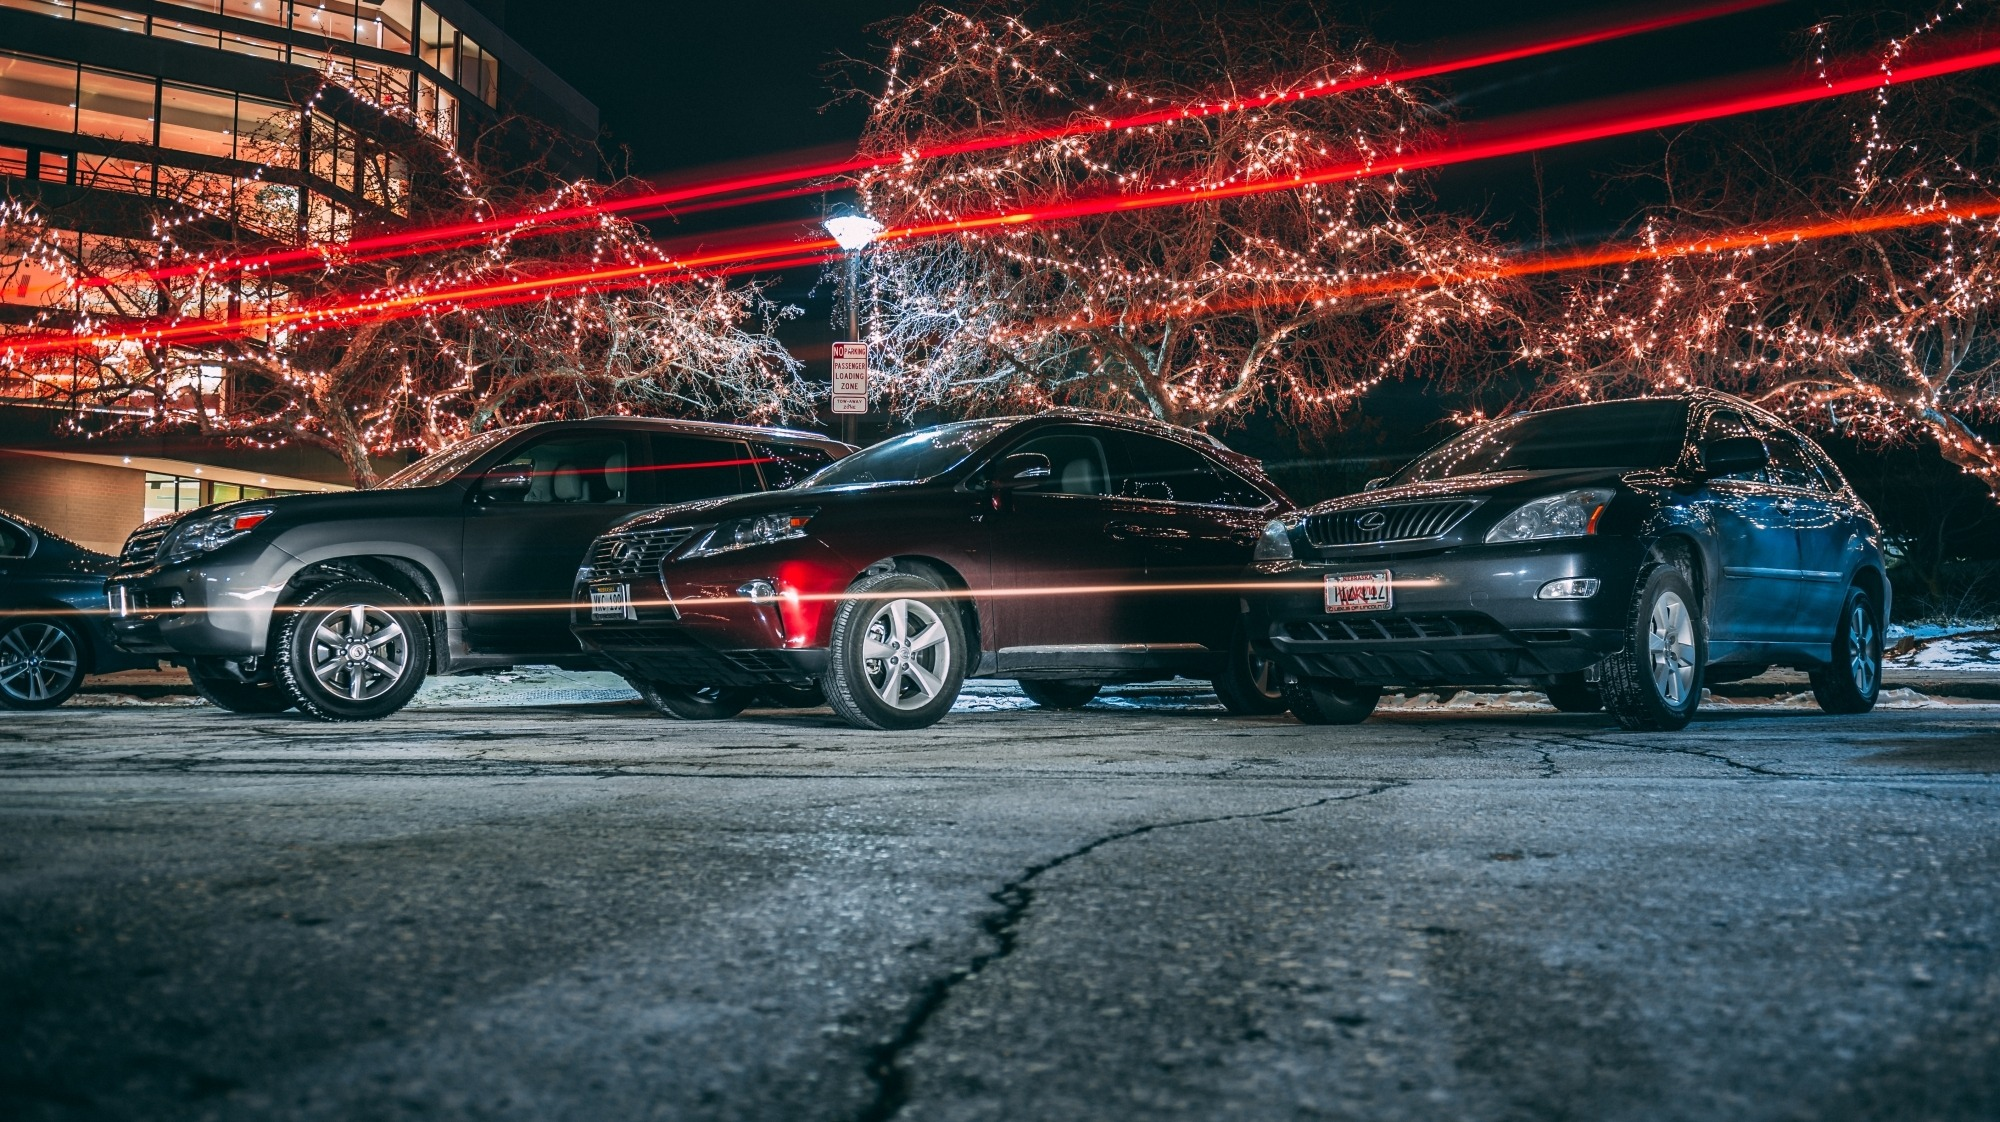 Image taken from a low angle of three vehicles parked at night in front of the Lied Center with lights streaking across the picture